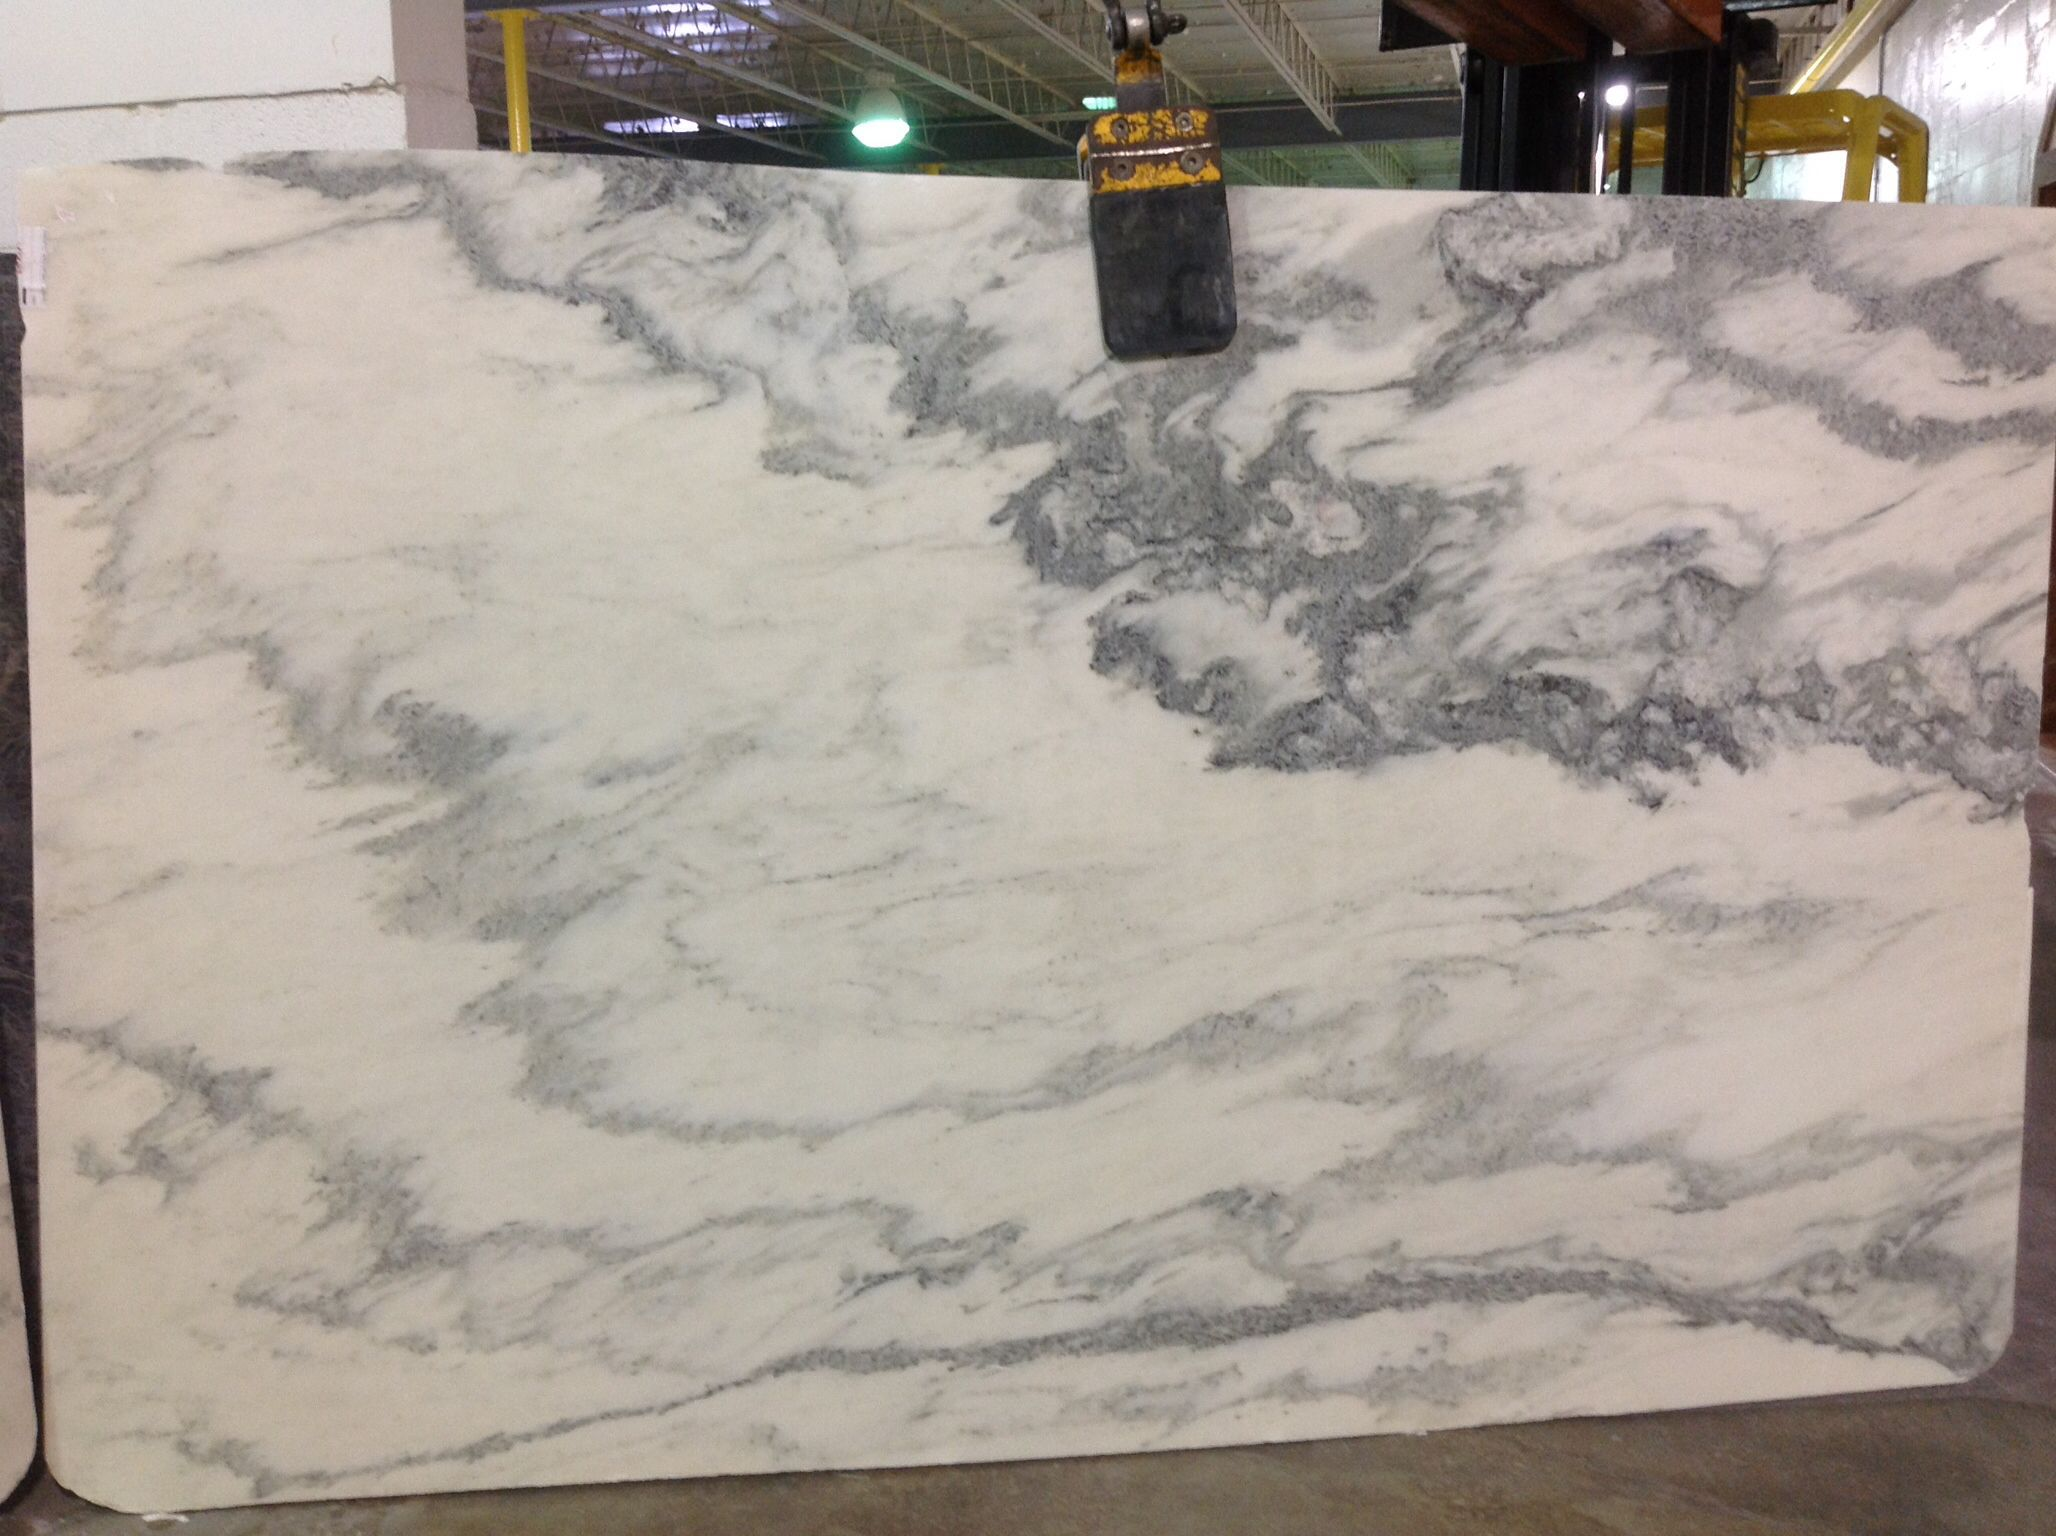 Vermont Danby Marble : Vermont danby montclair marble slabs for kitchen